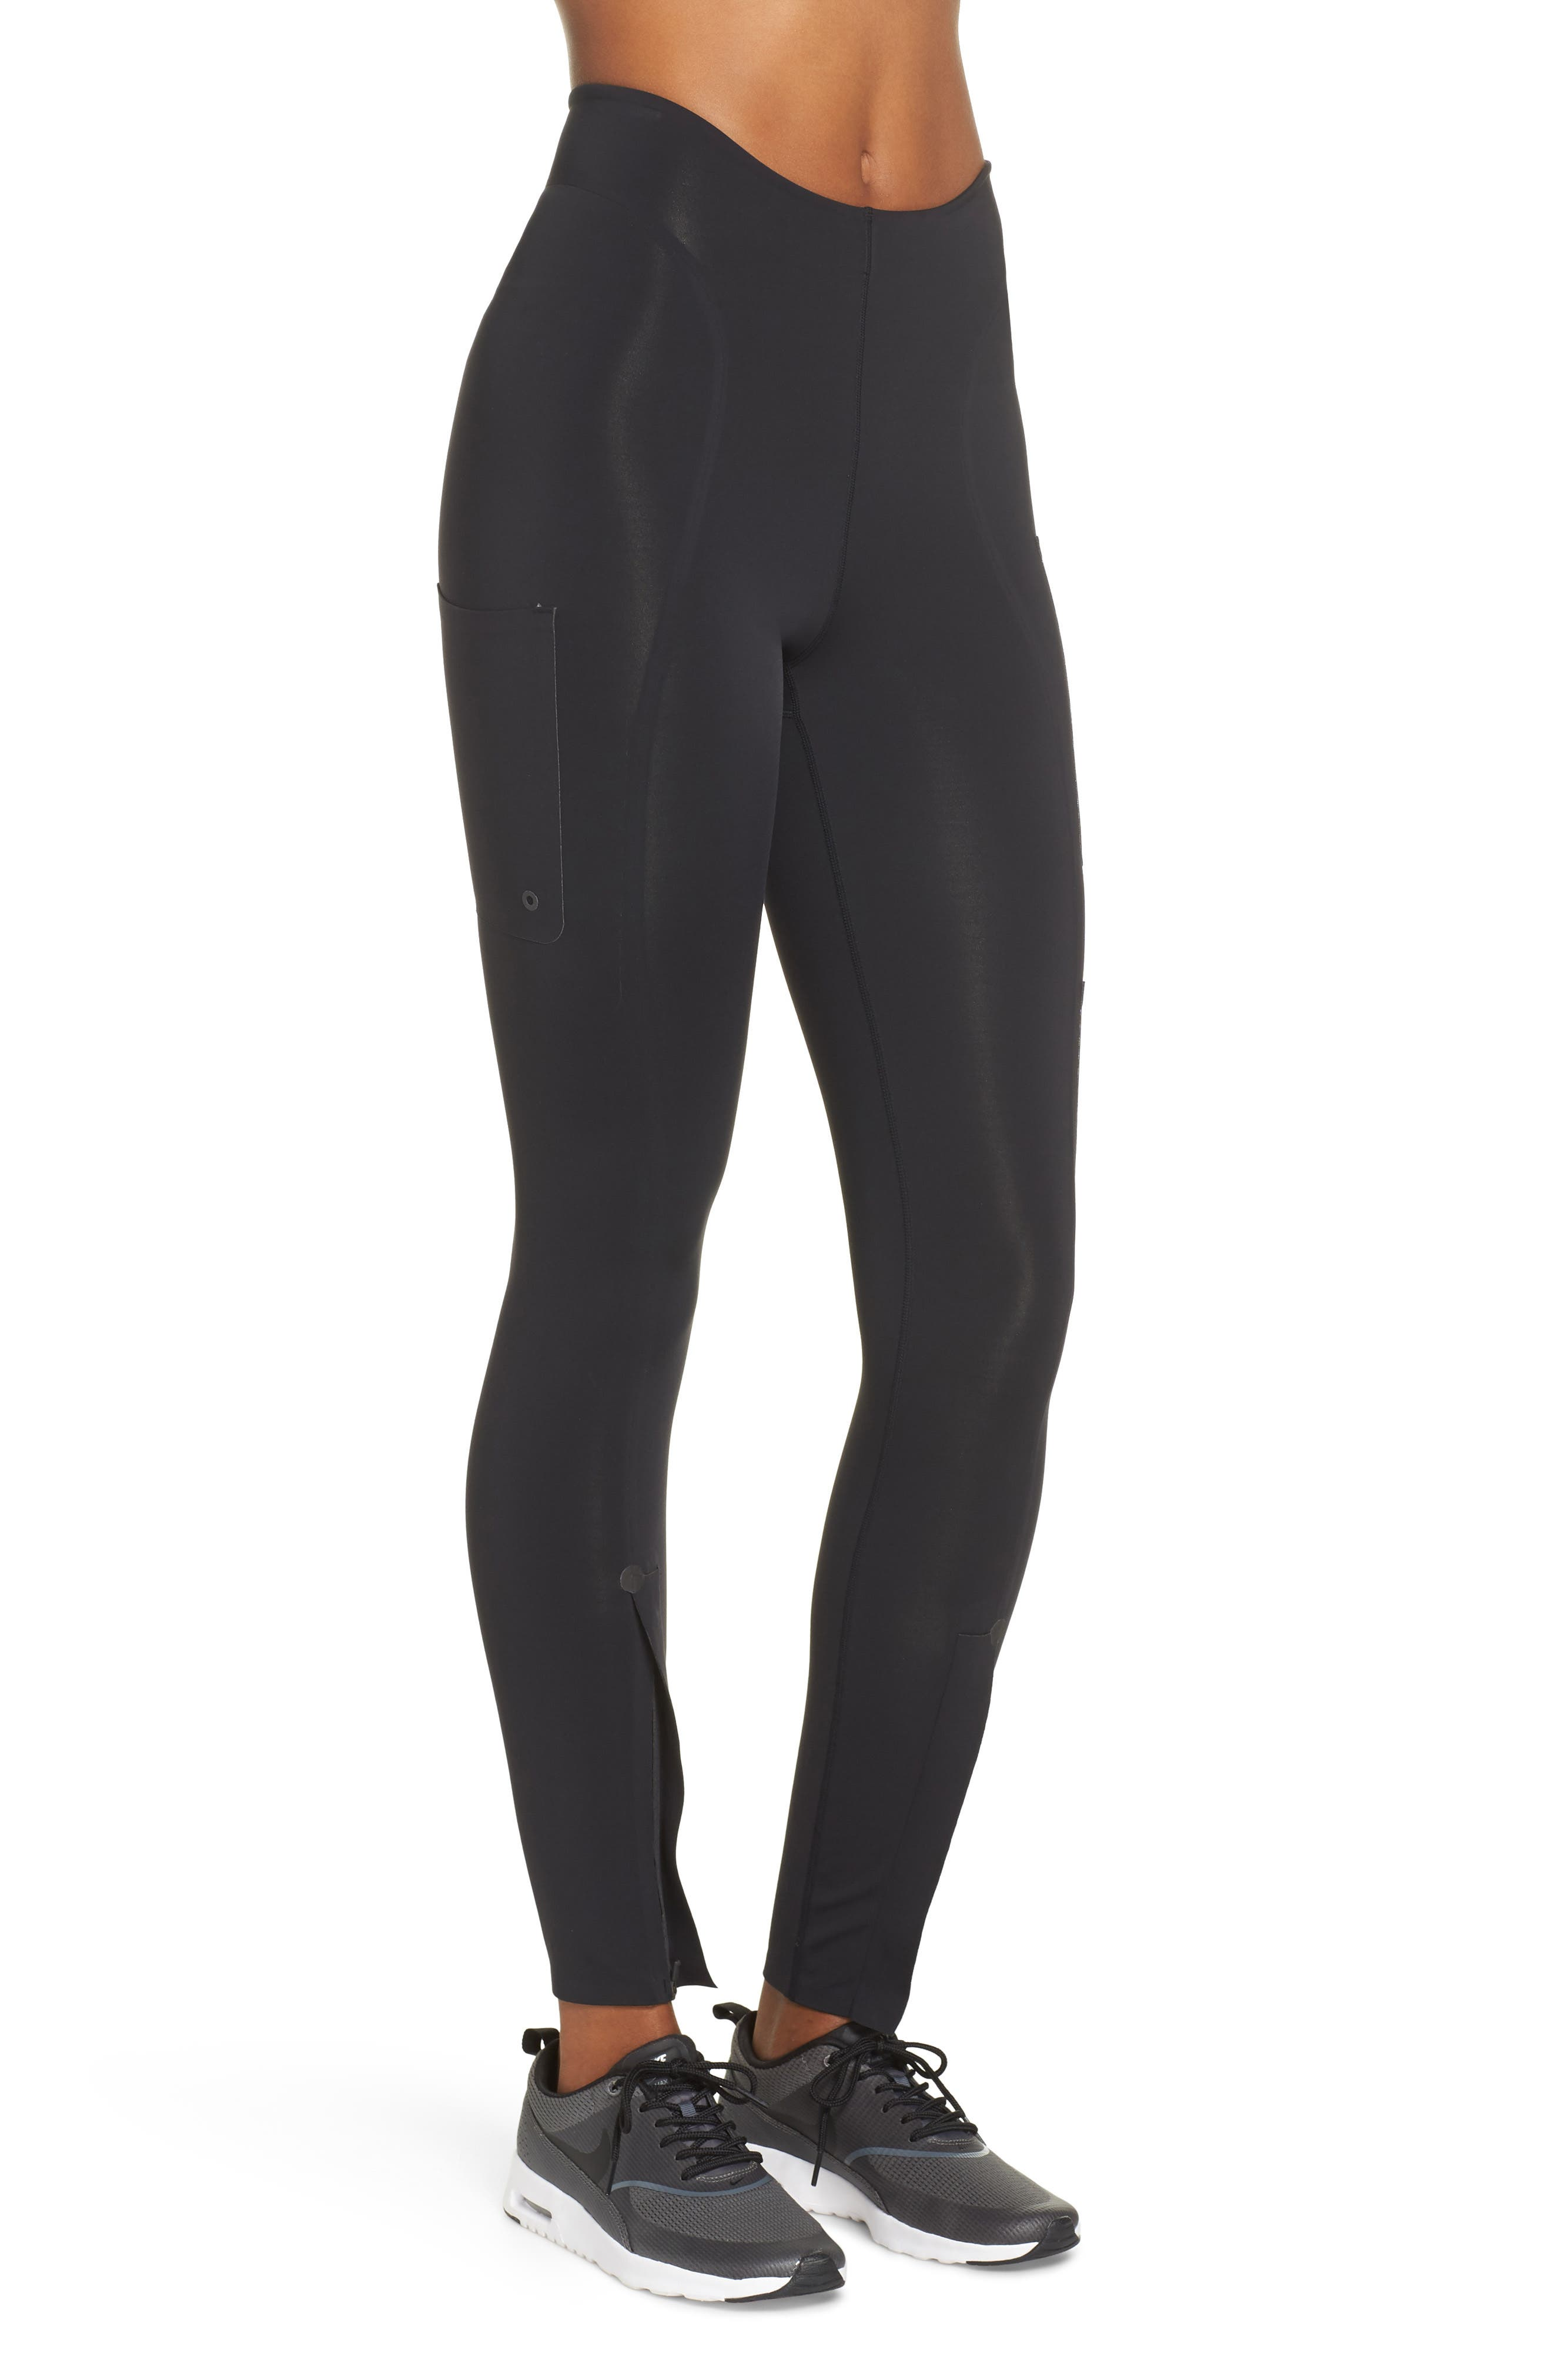 NikeLab XX Women's High Rise Training Tights,                             Alternate thumbnail 3, color,                             BLACK